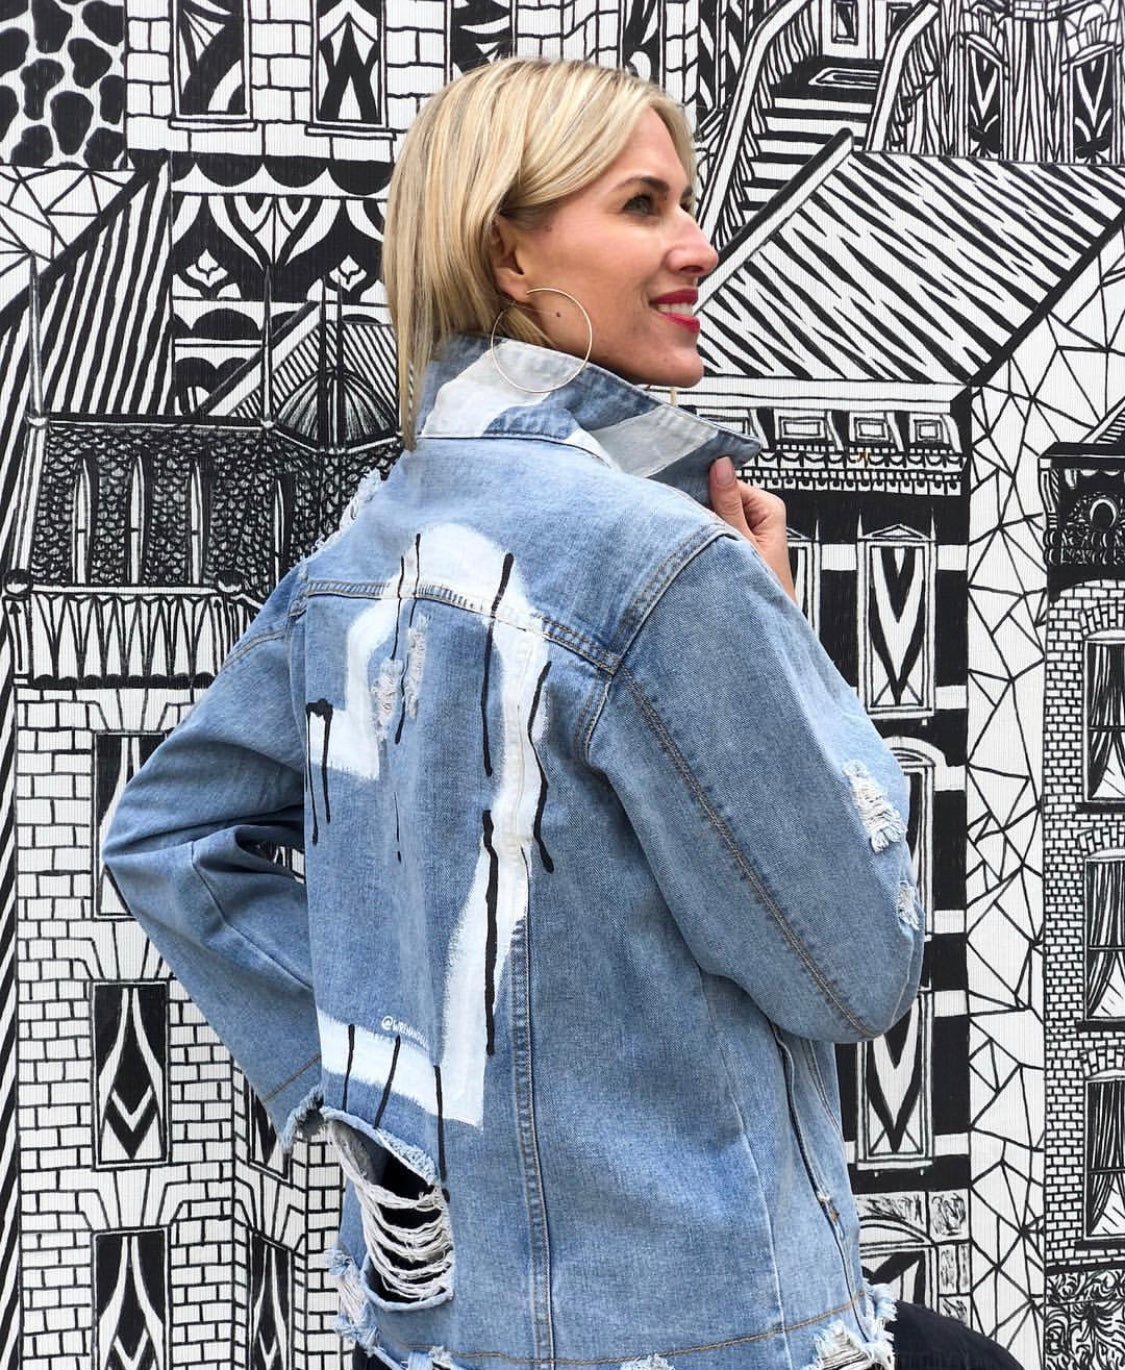 Former Housewife turned blogger Kristen Taekman